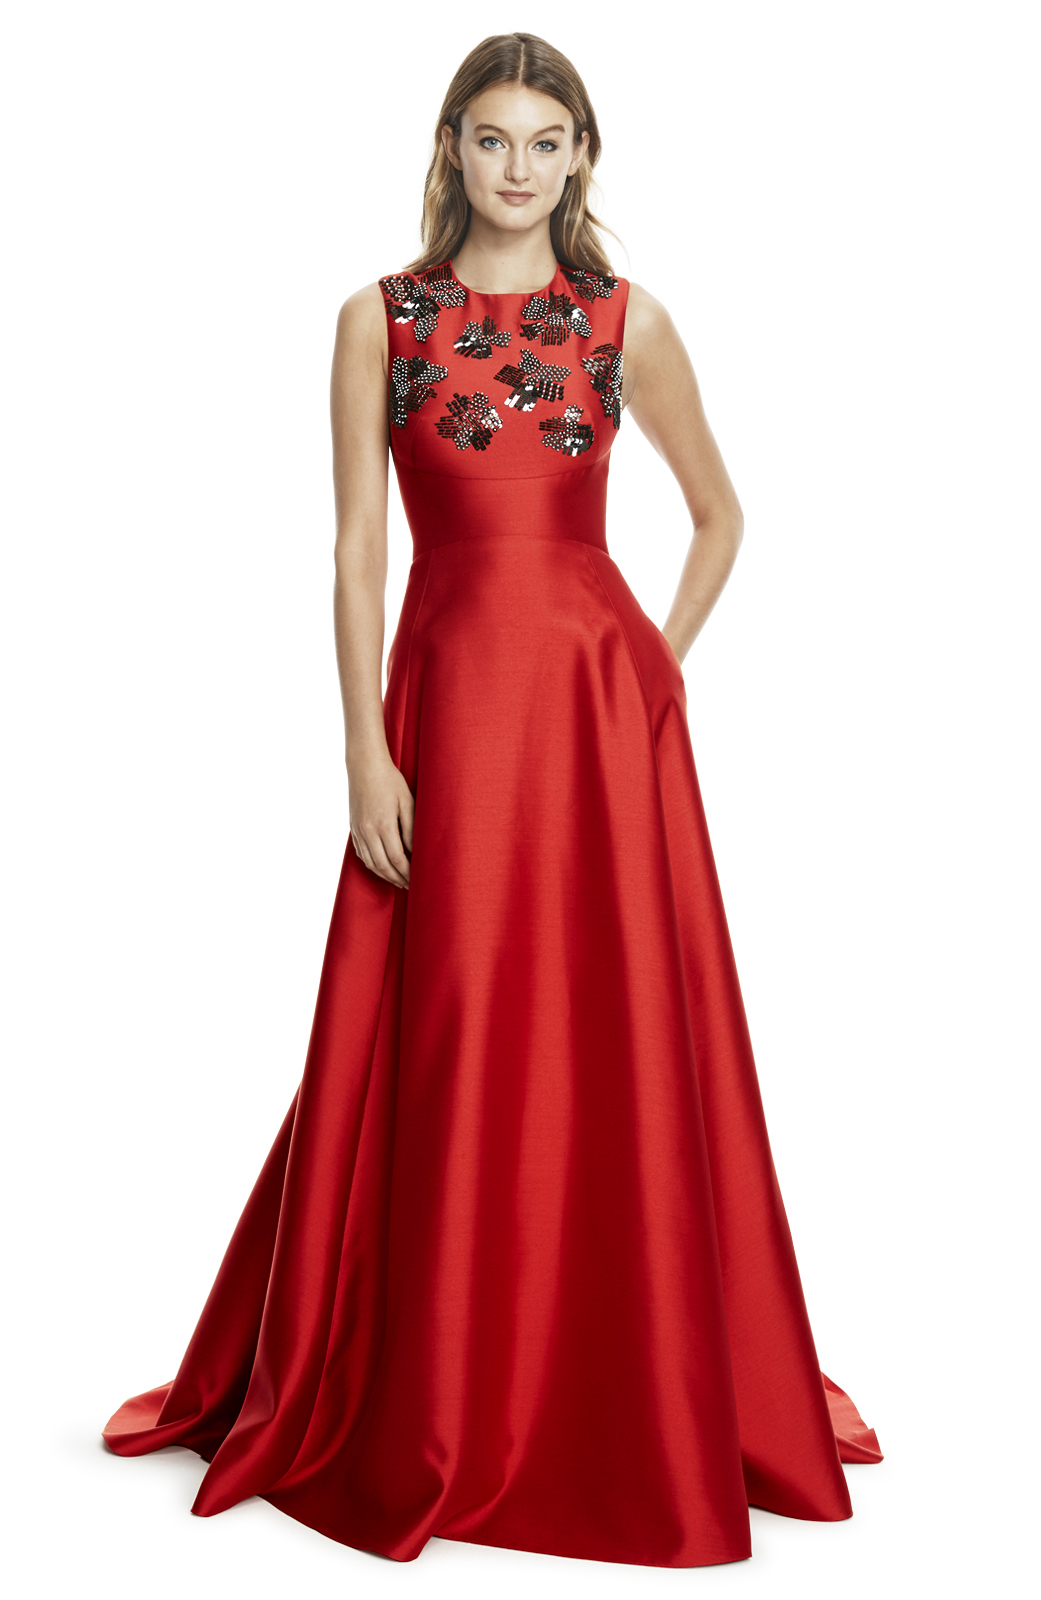 Lyst - Lela Rose Silk And Wool Embroidered Gown in Red